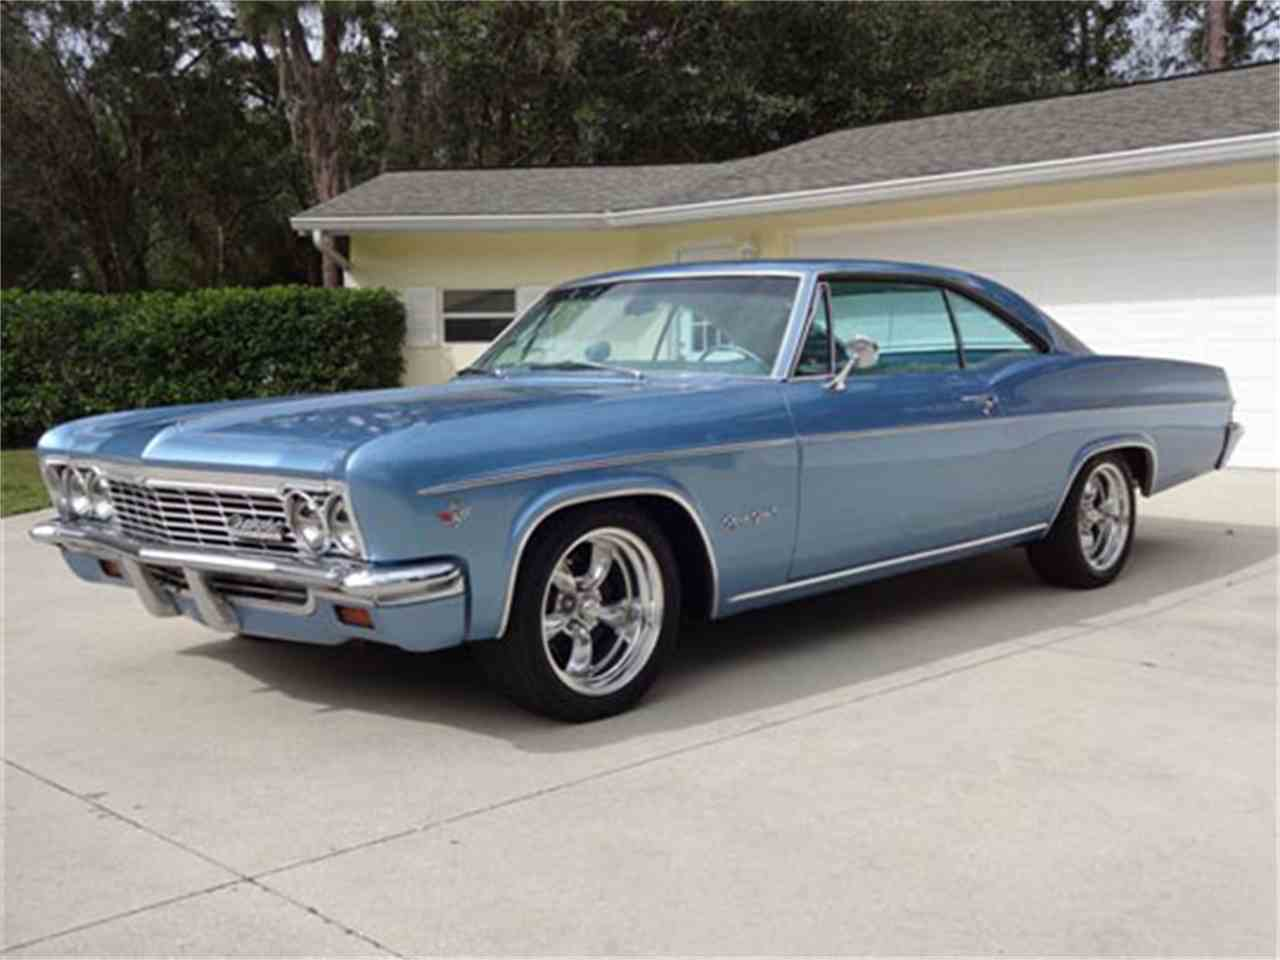 Large Picture of '66 Chevrolet Impala located in Alabama - $1,000.00 Offered by Rocket City Customs - L6W3